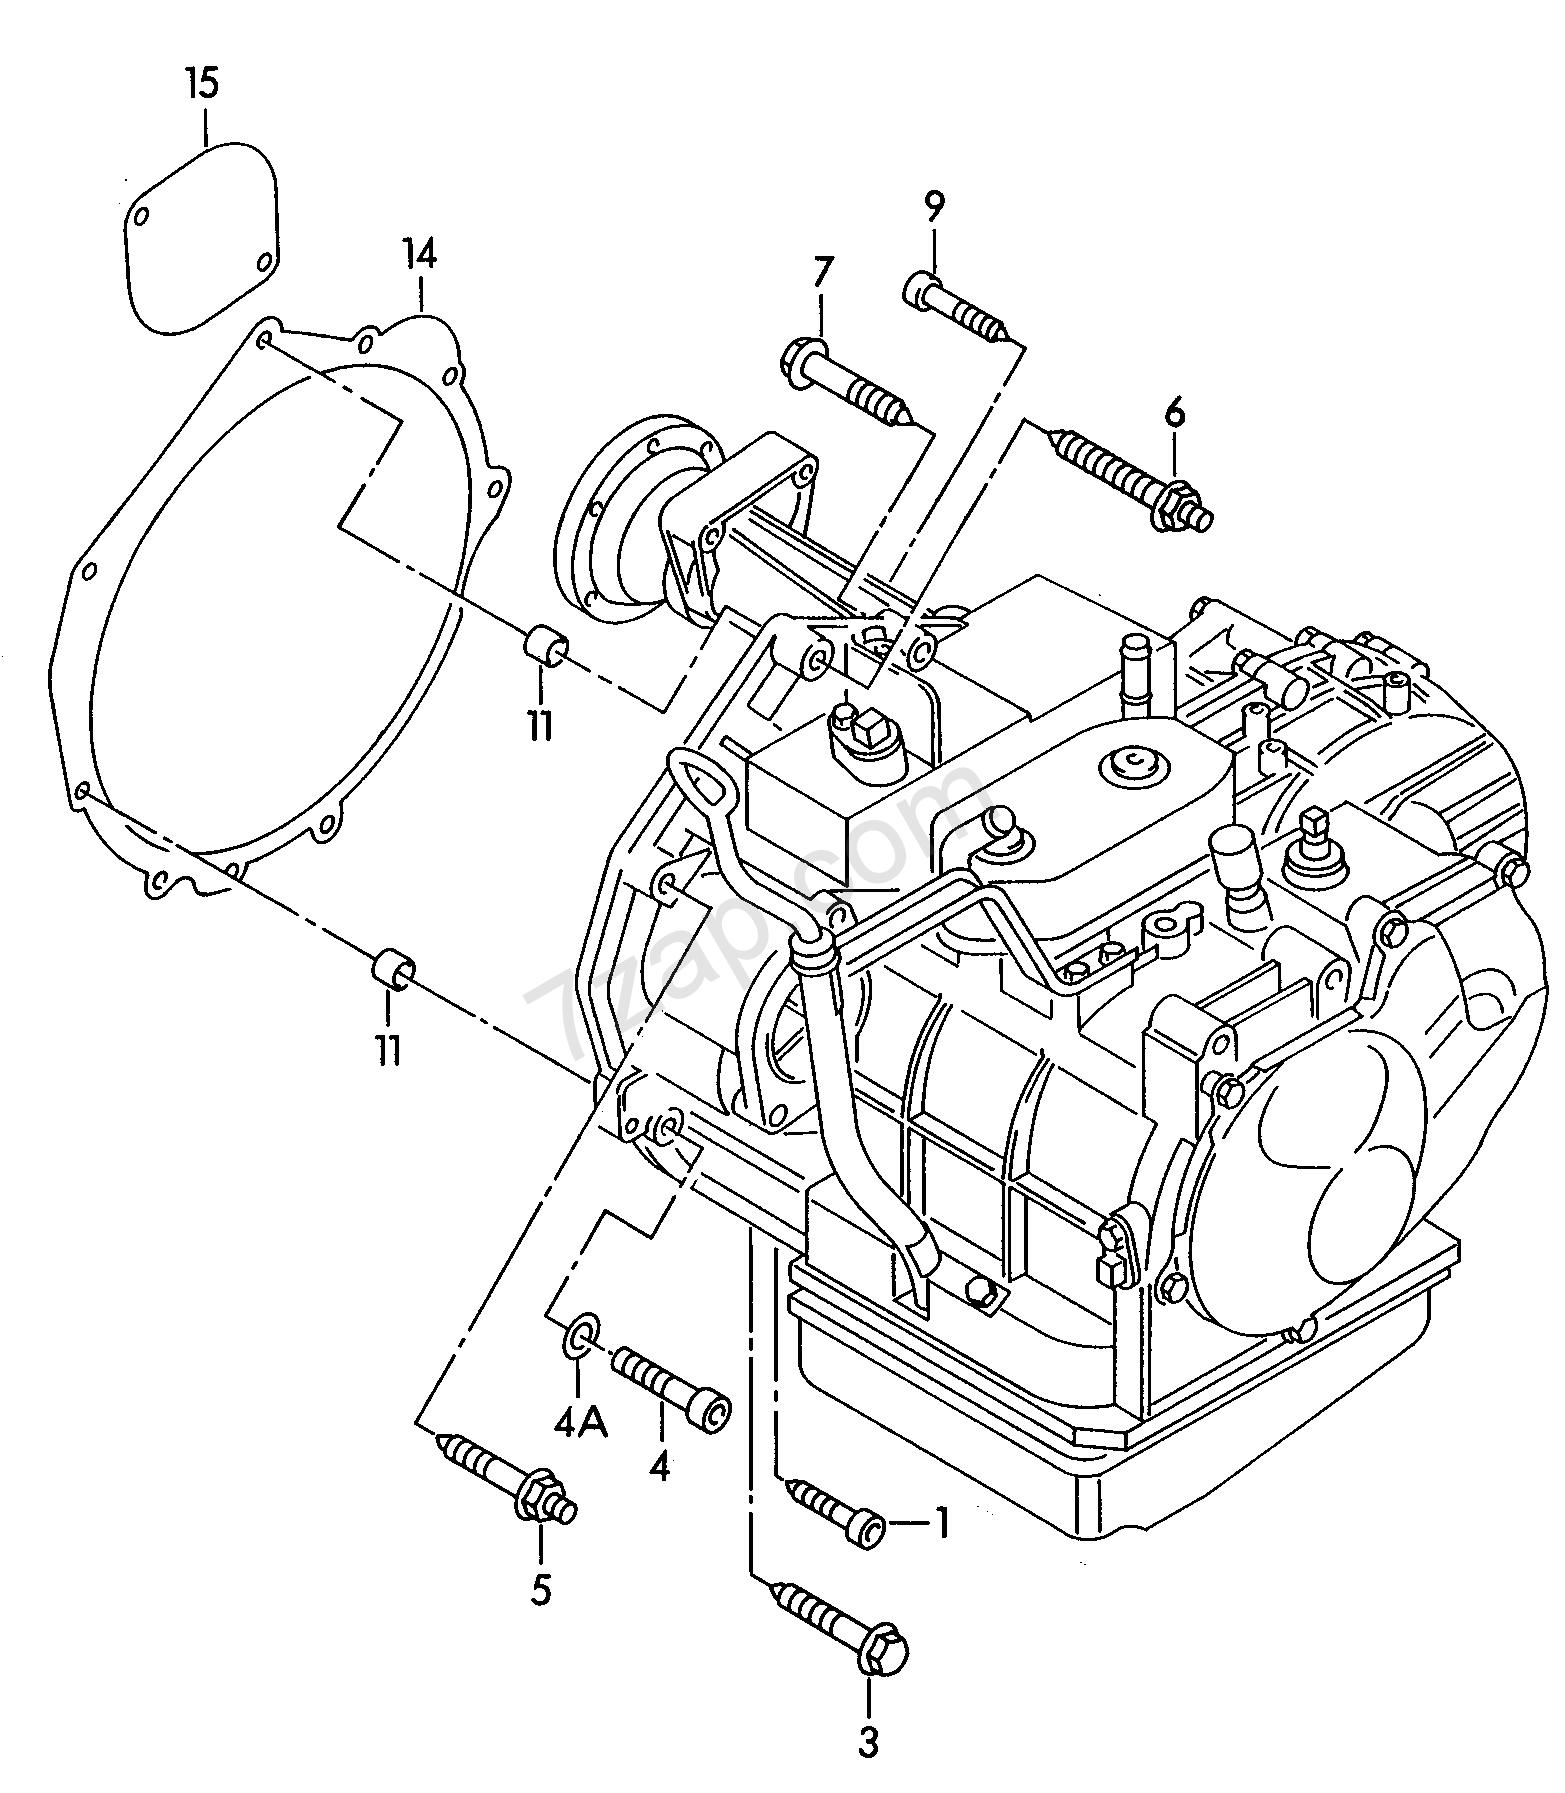 Mounting Parts For Engine And Transmission For 4